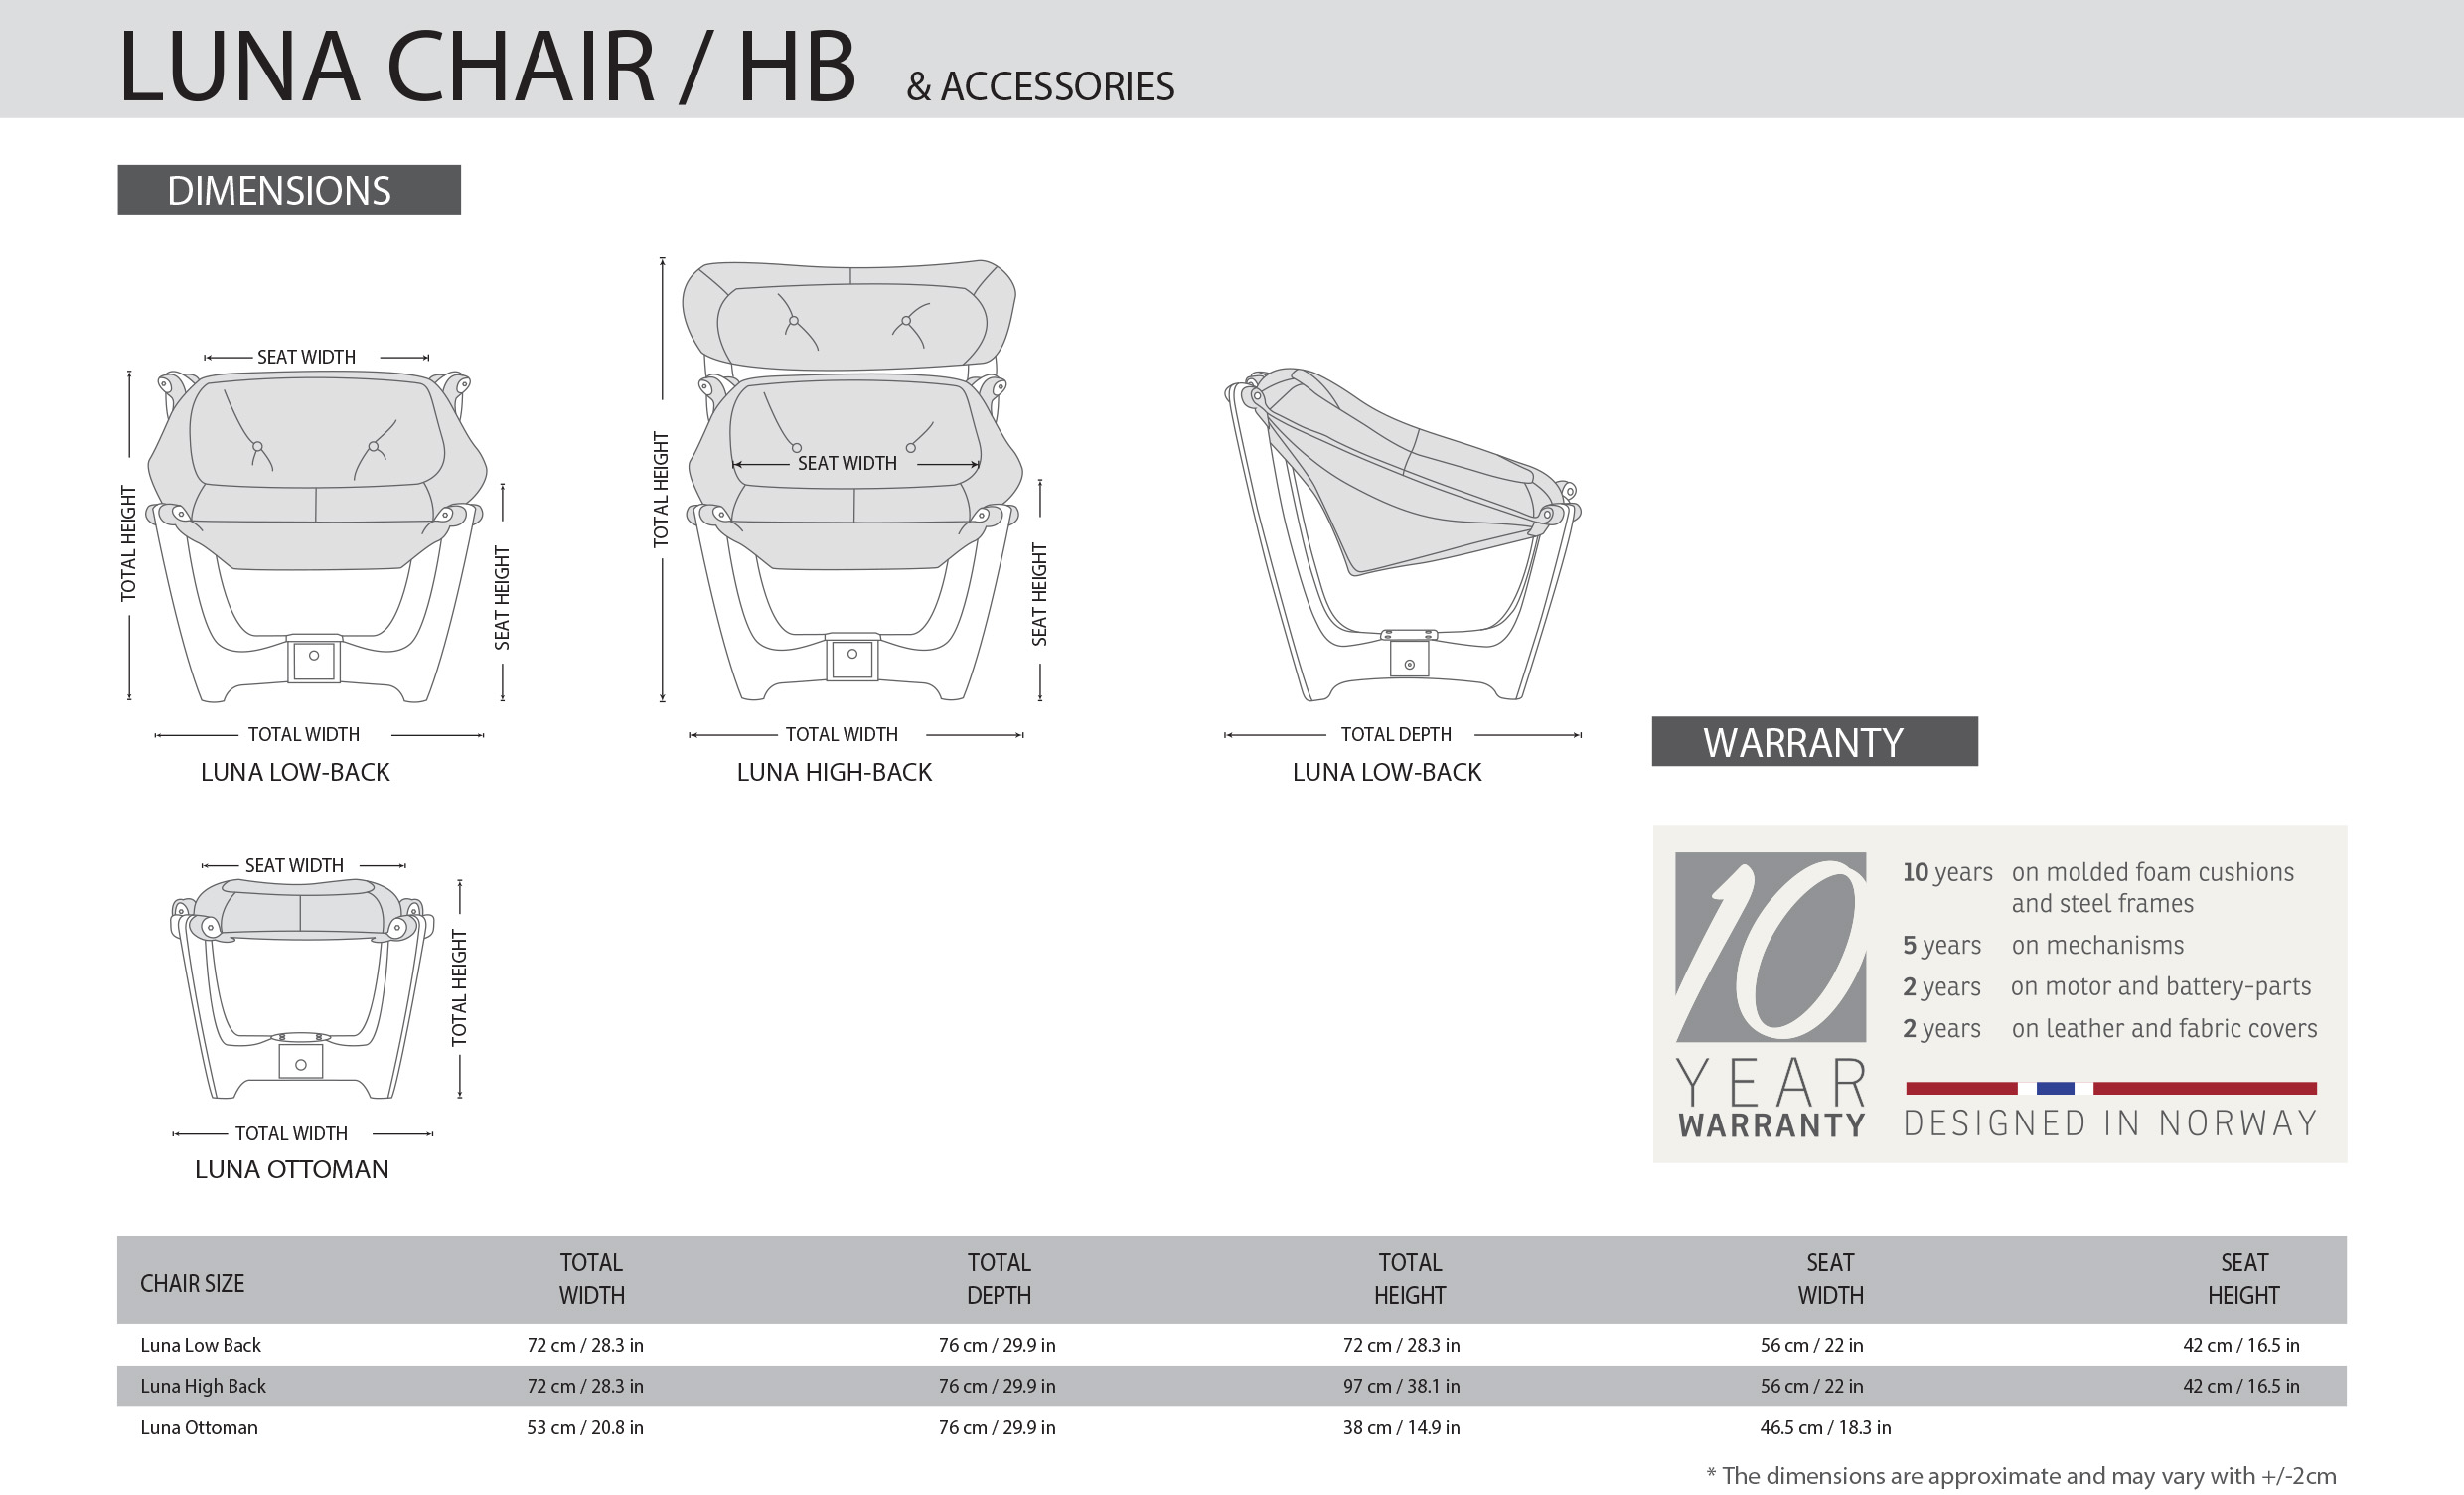 IMG Luna High Back Chair Dimensions